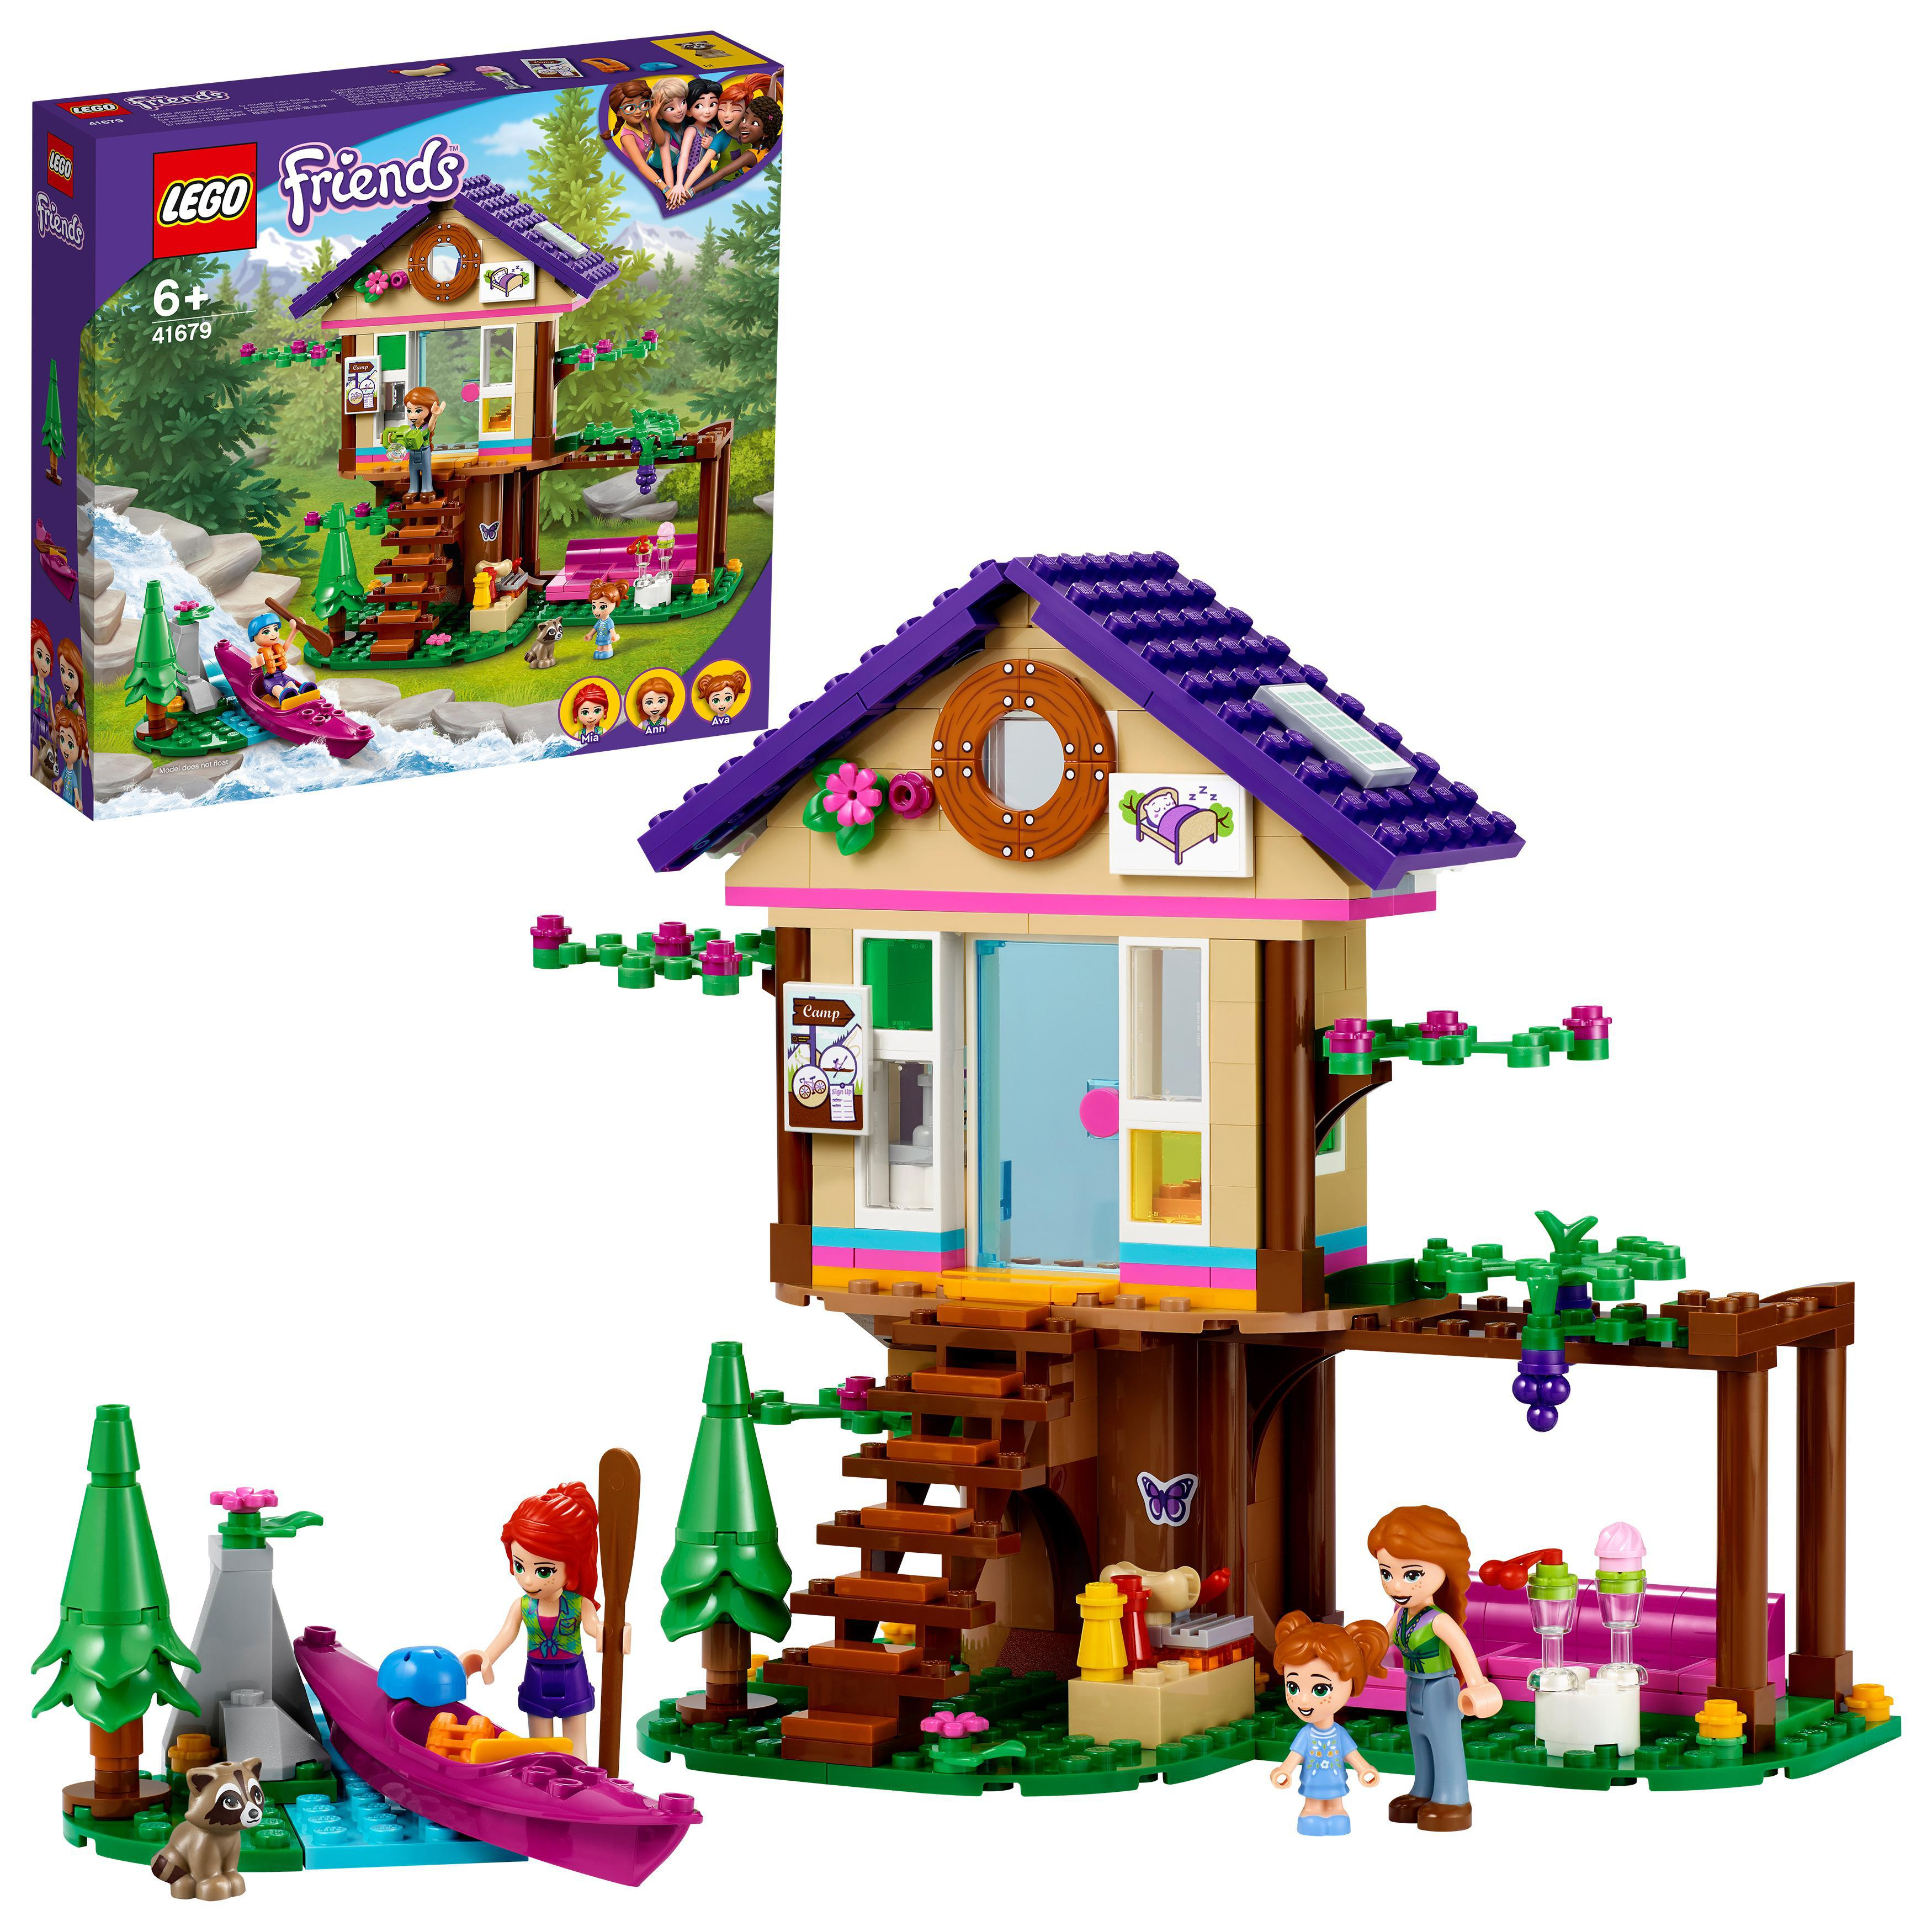 LEGO Friends - Forest House (41679)